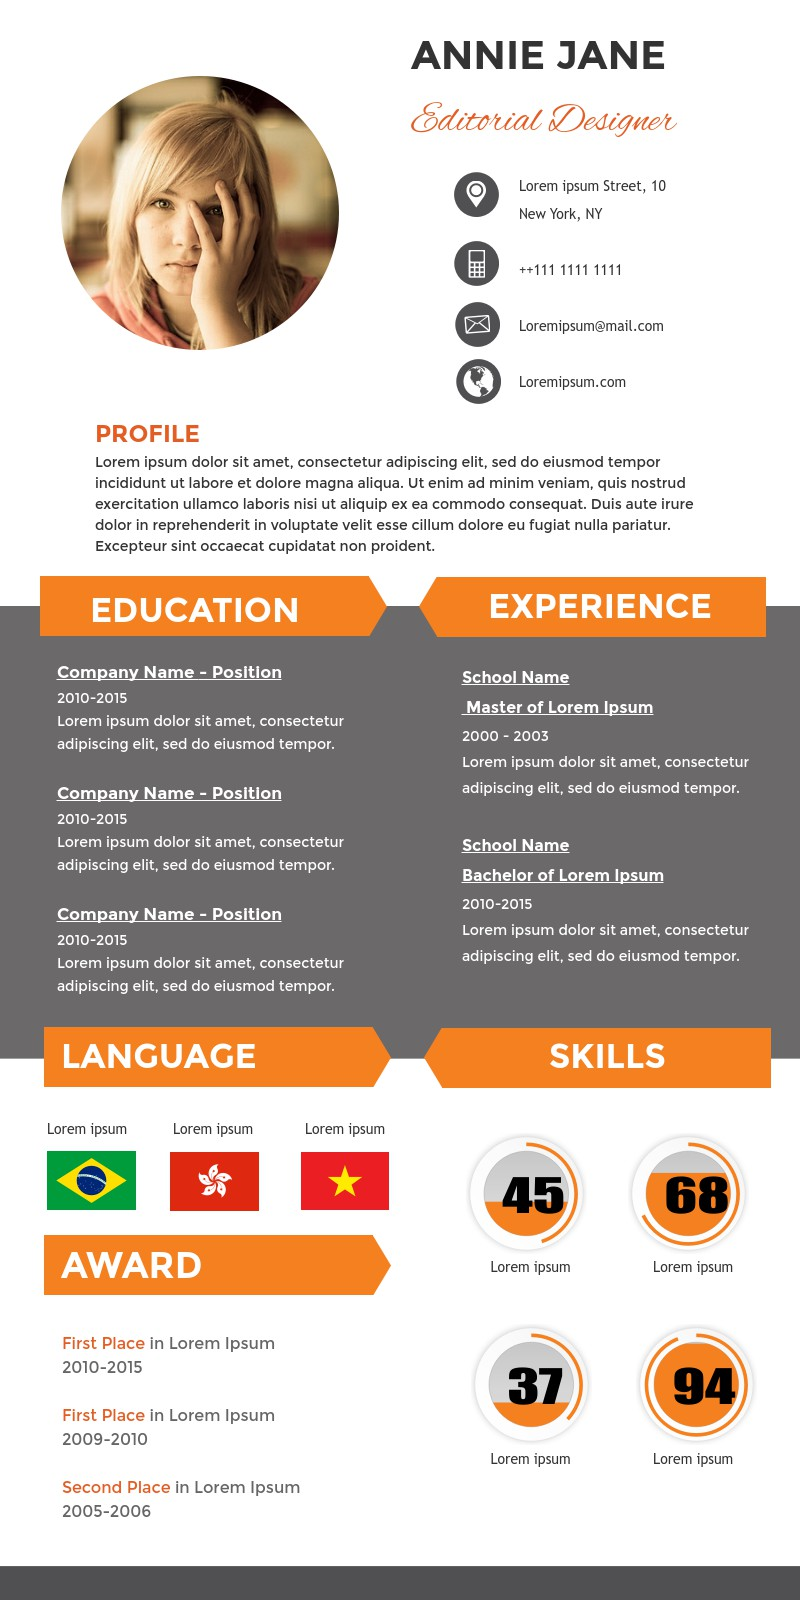 design thinking test infographic template